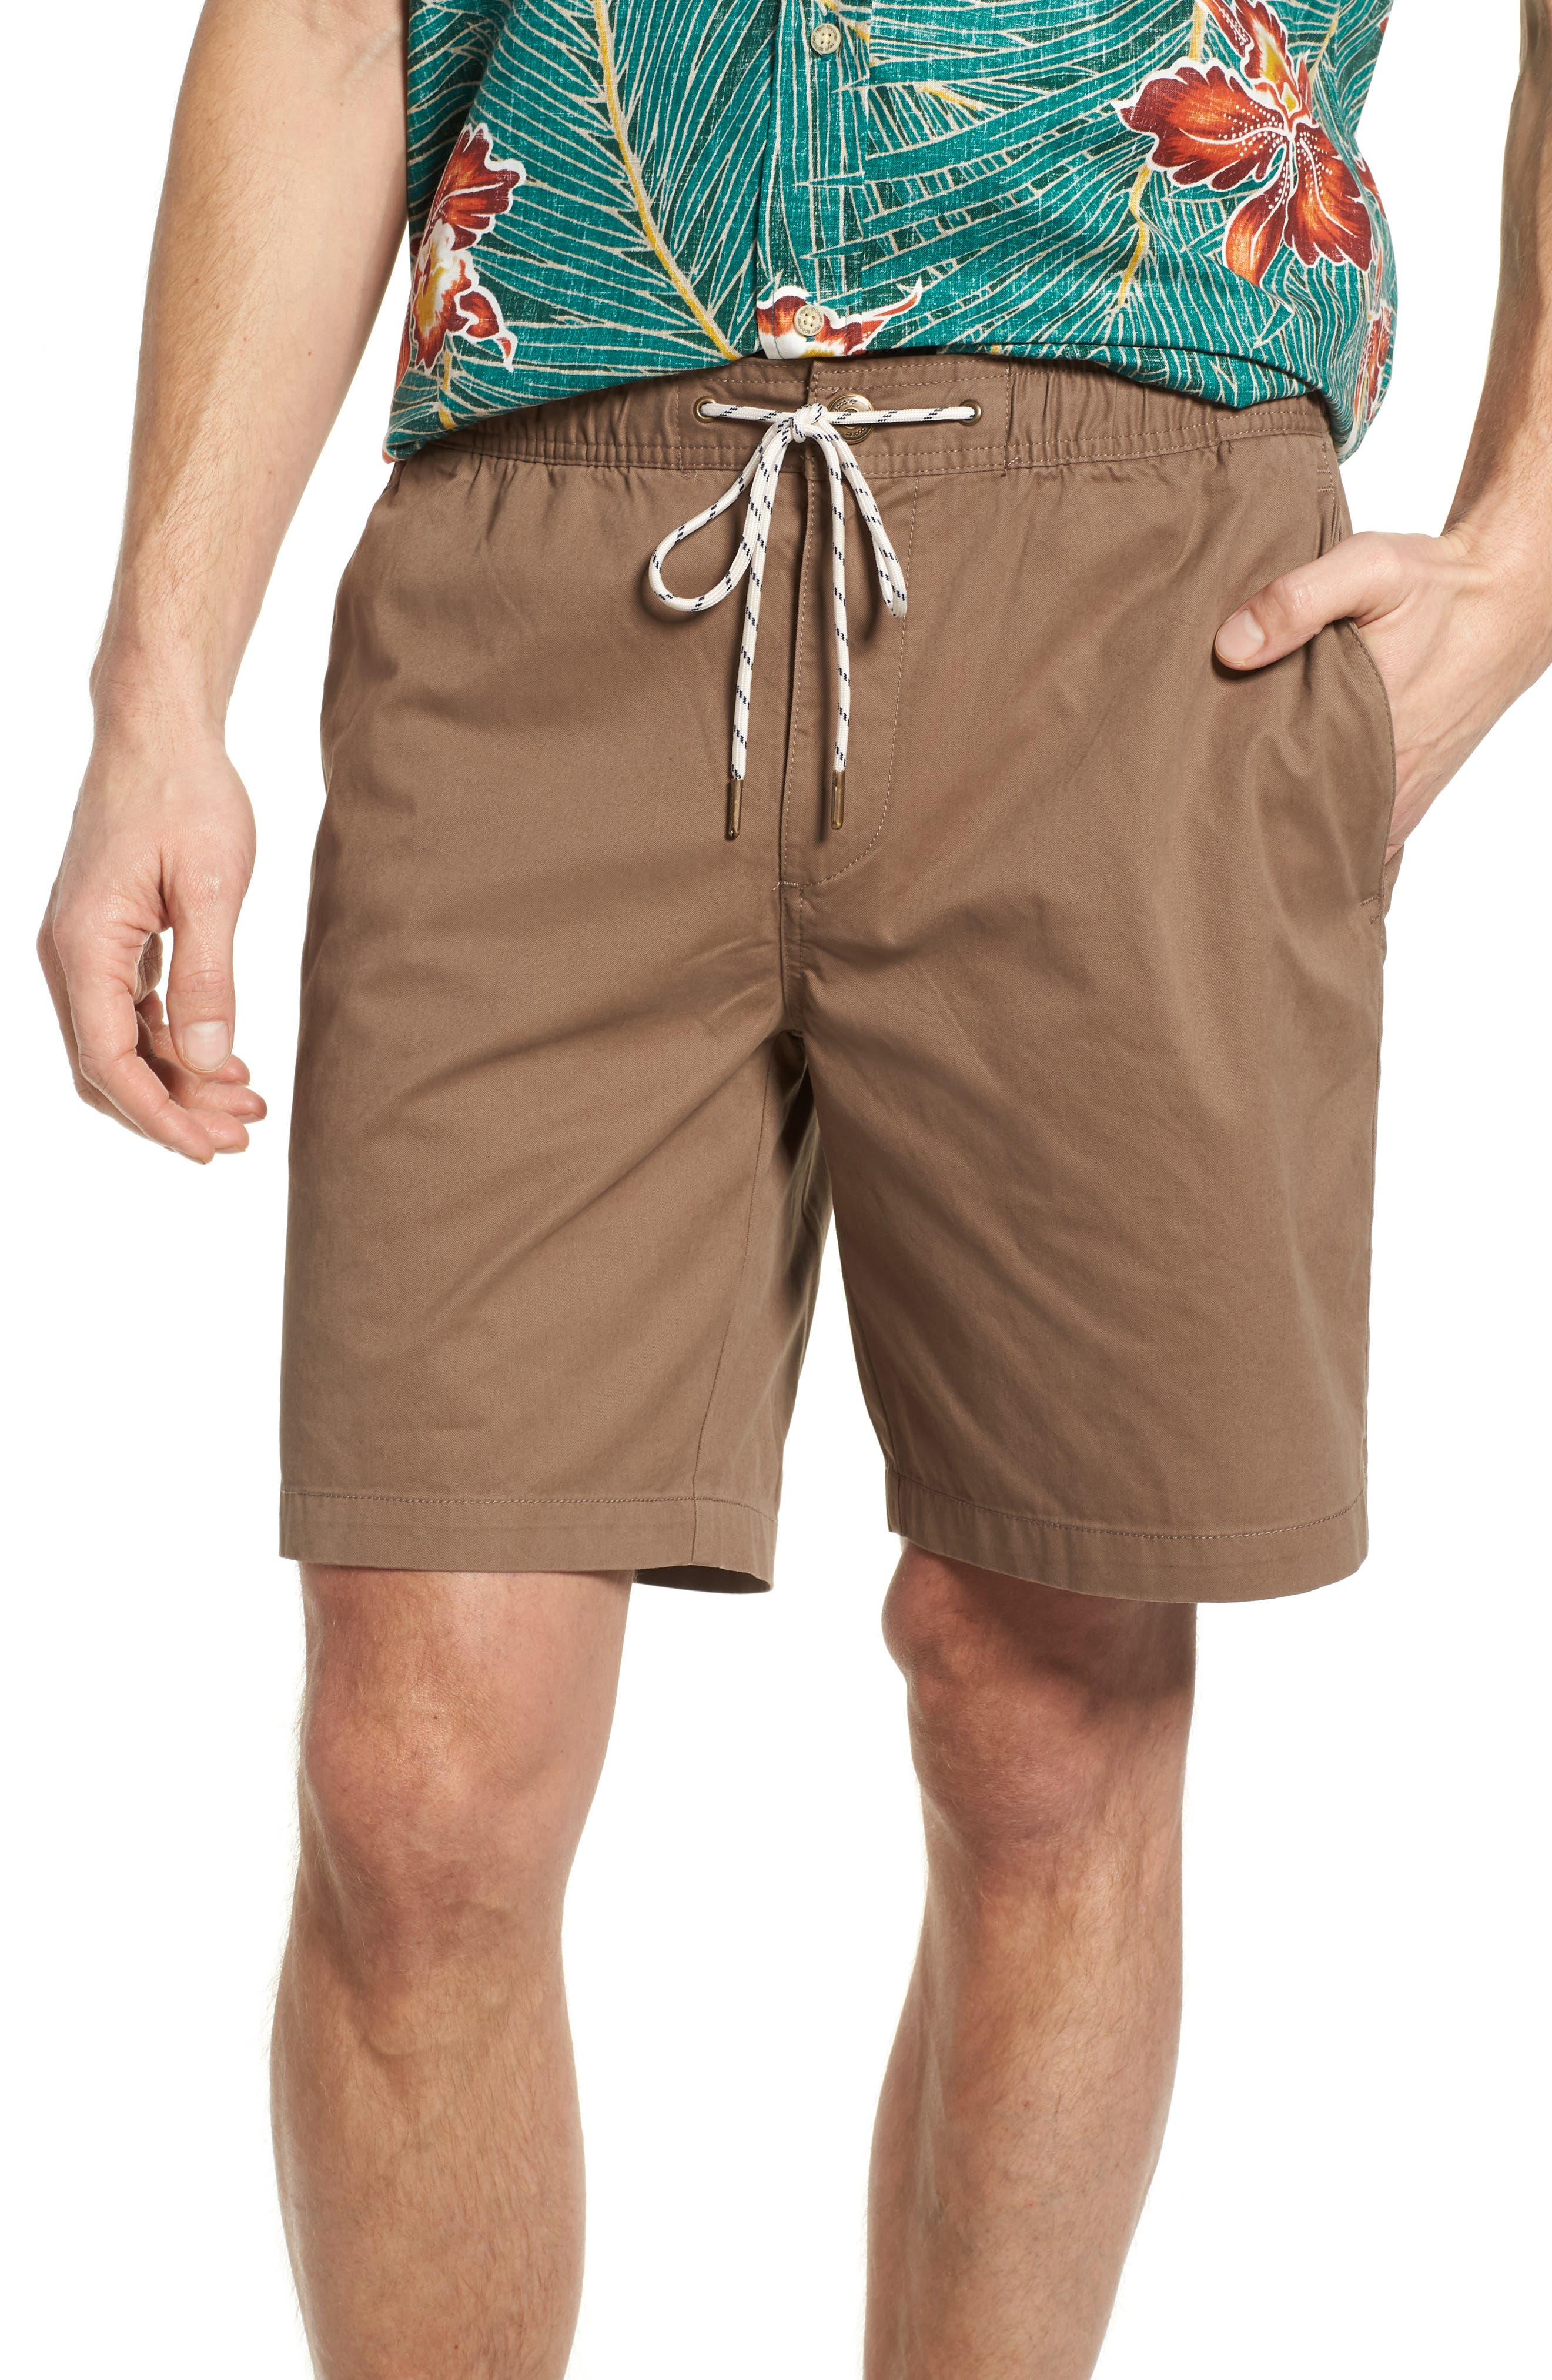 Alternate Image 1 Selected - Reyn Spooner Beach Shorts